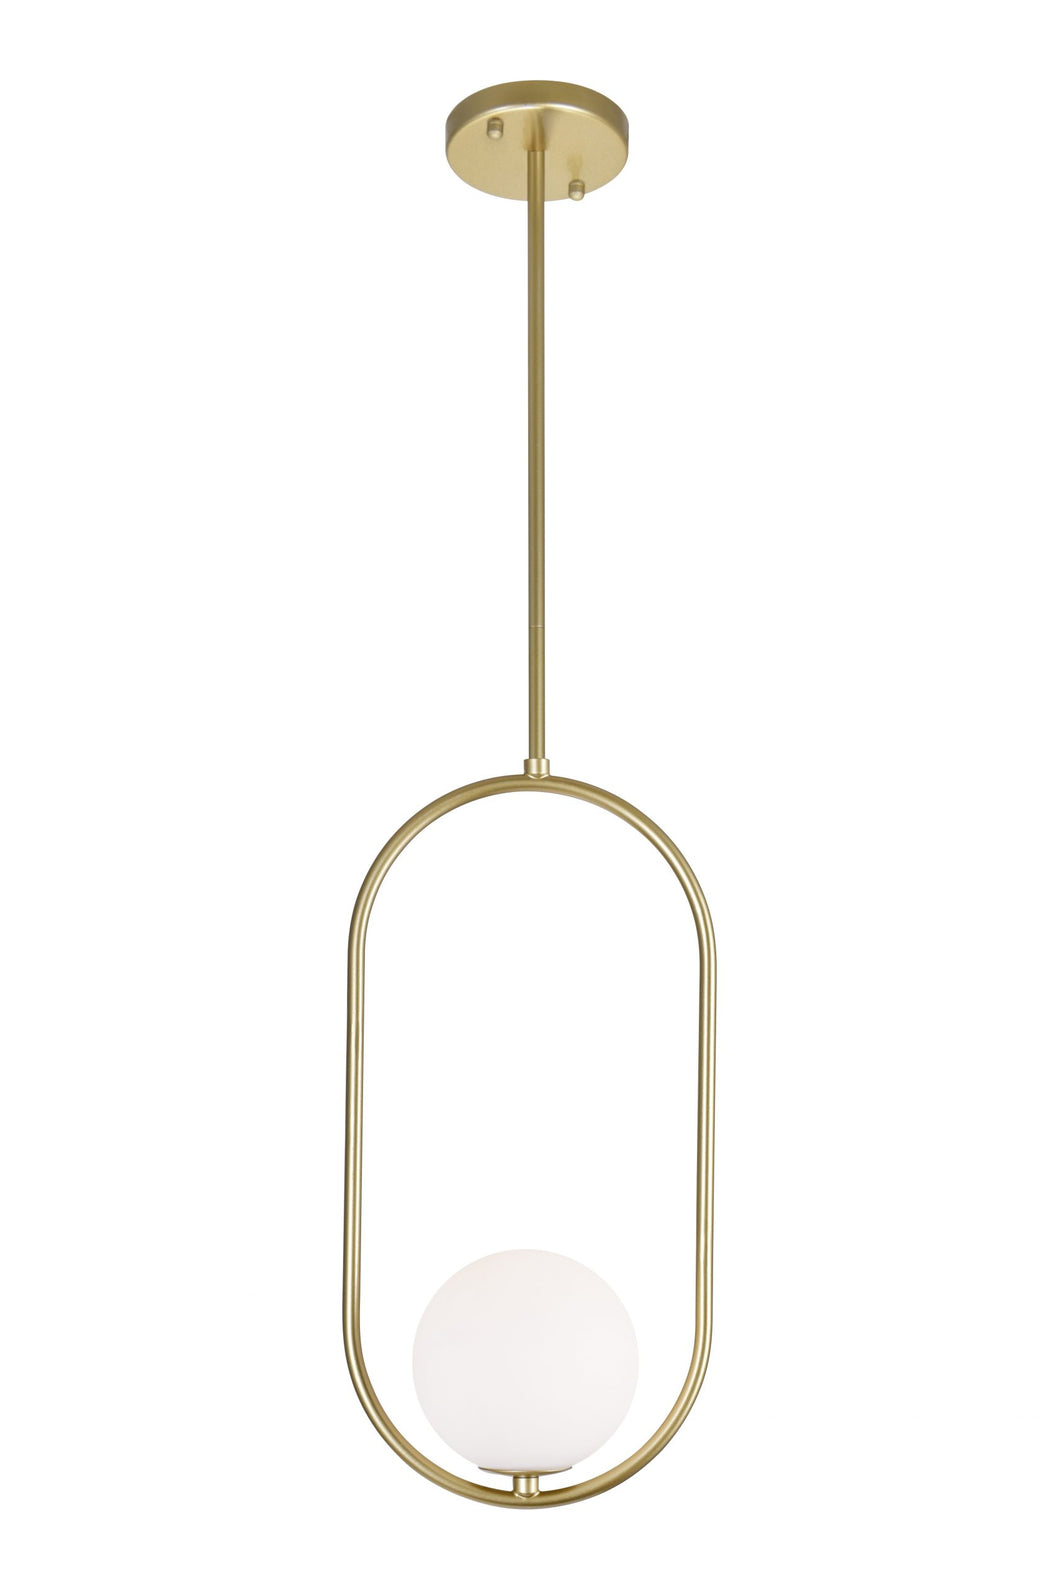 1 LIGHT MINI PENDANT WITH MEDALLION GOLD FINISH - Dream art Gallery